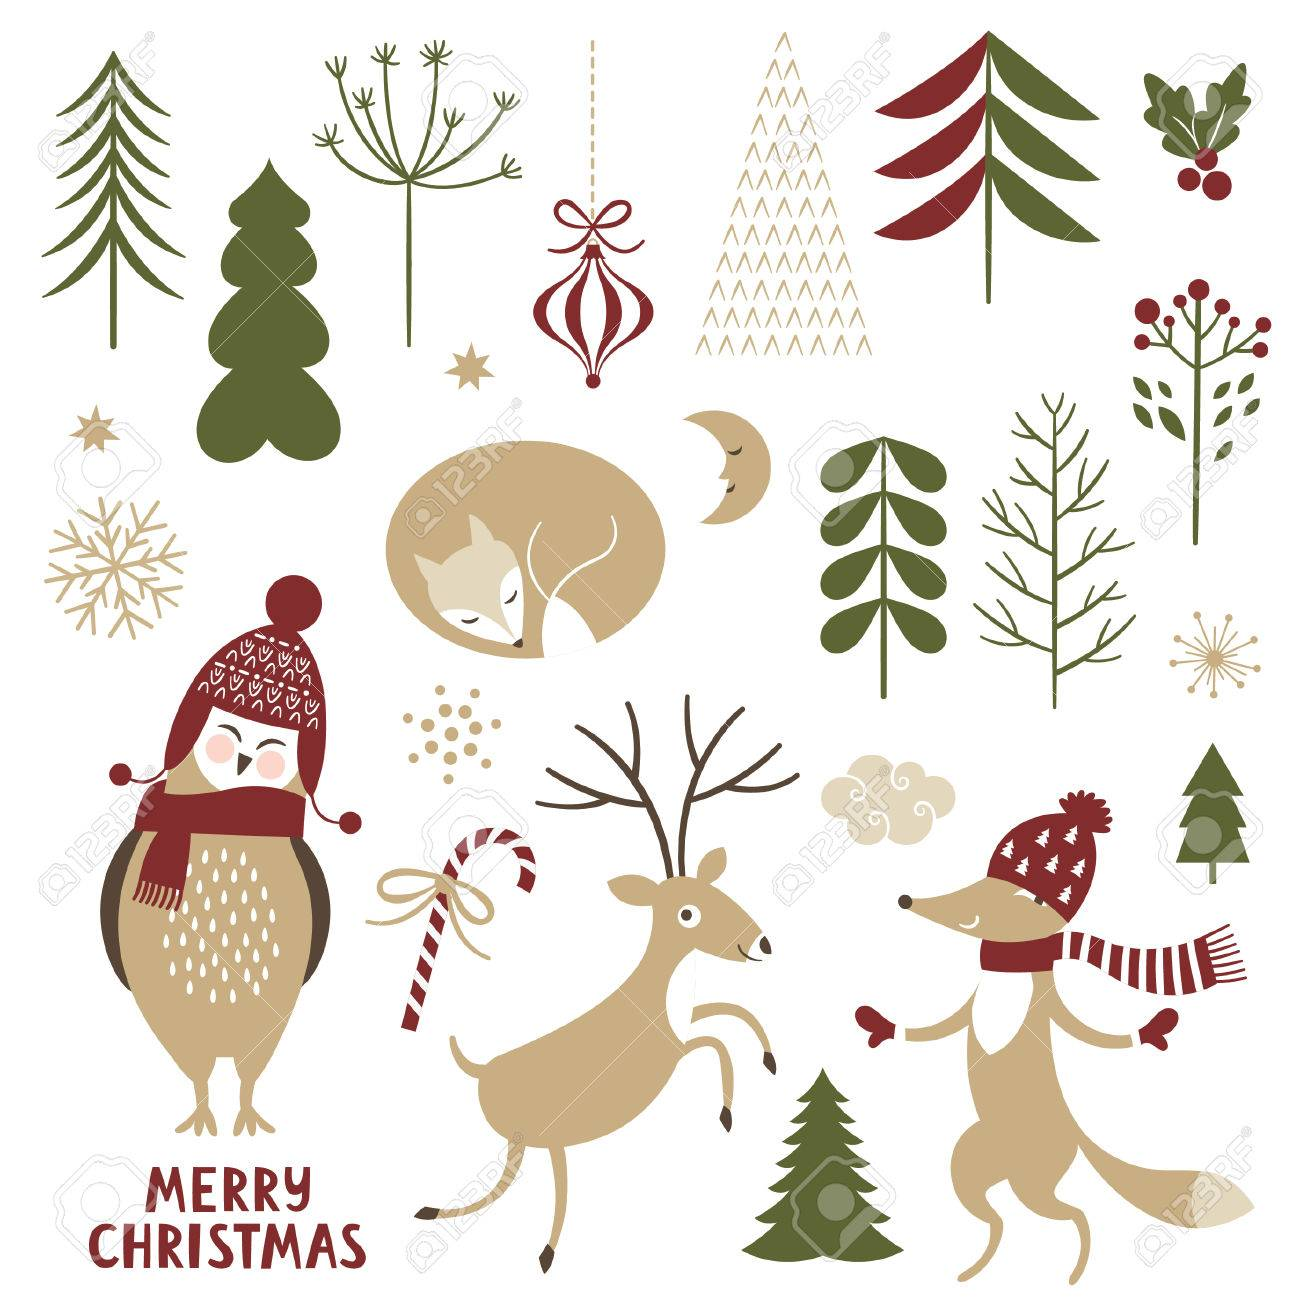 Christmas Illustrations.Christmas Illustrations Set Of Graphic Elements And Cute Characters